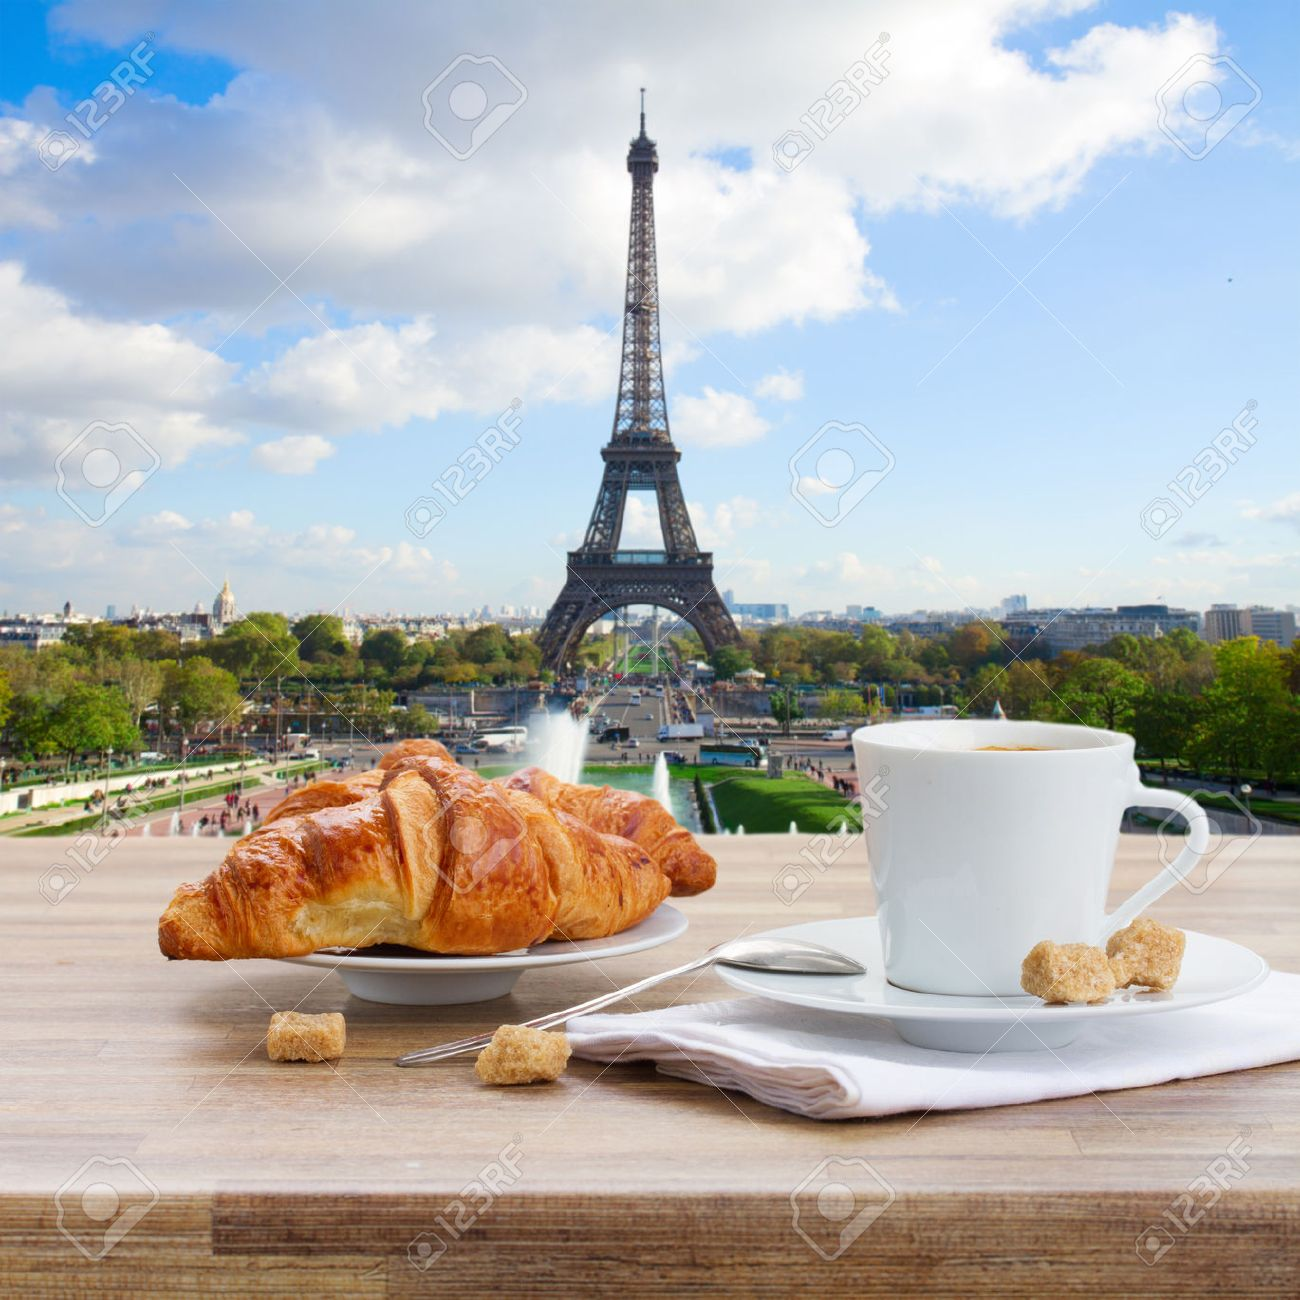 Outdoor cafe in paris with tower in background - French Cafe Cup Of Coffee With Croissant In Paris France